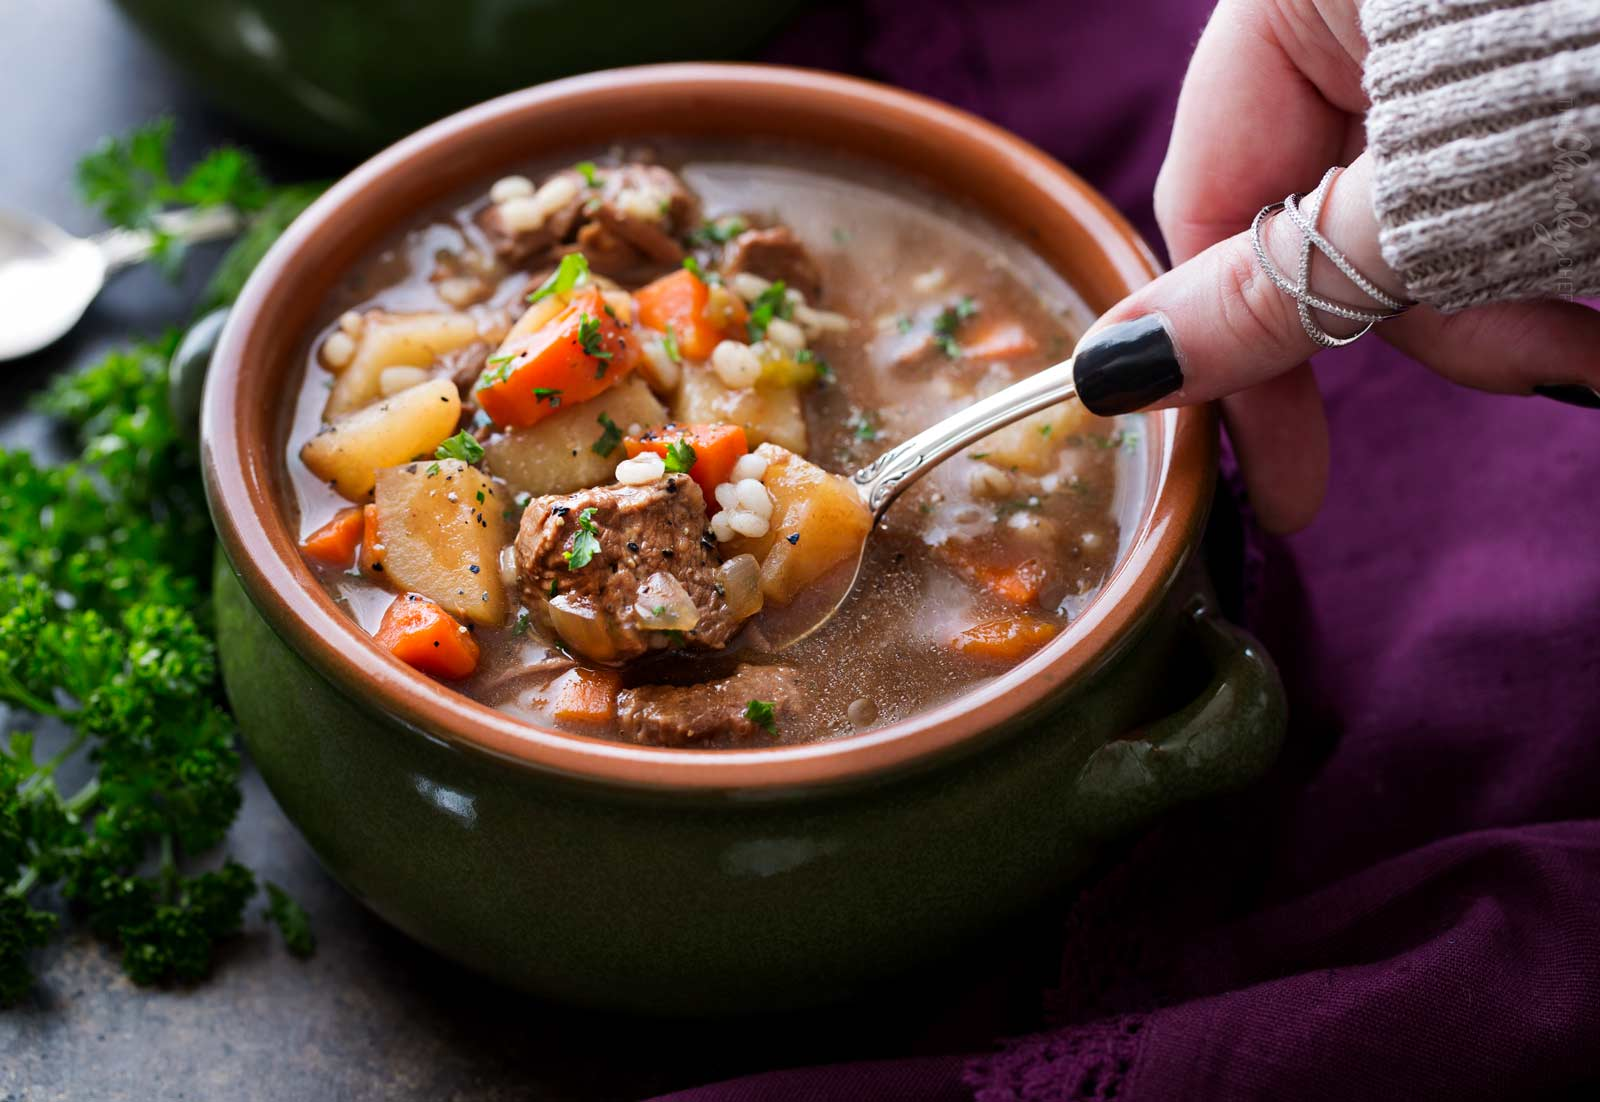 Spoonful of slow cooker beef barley soup